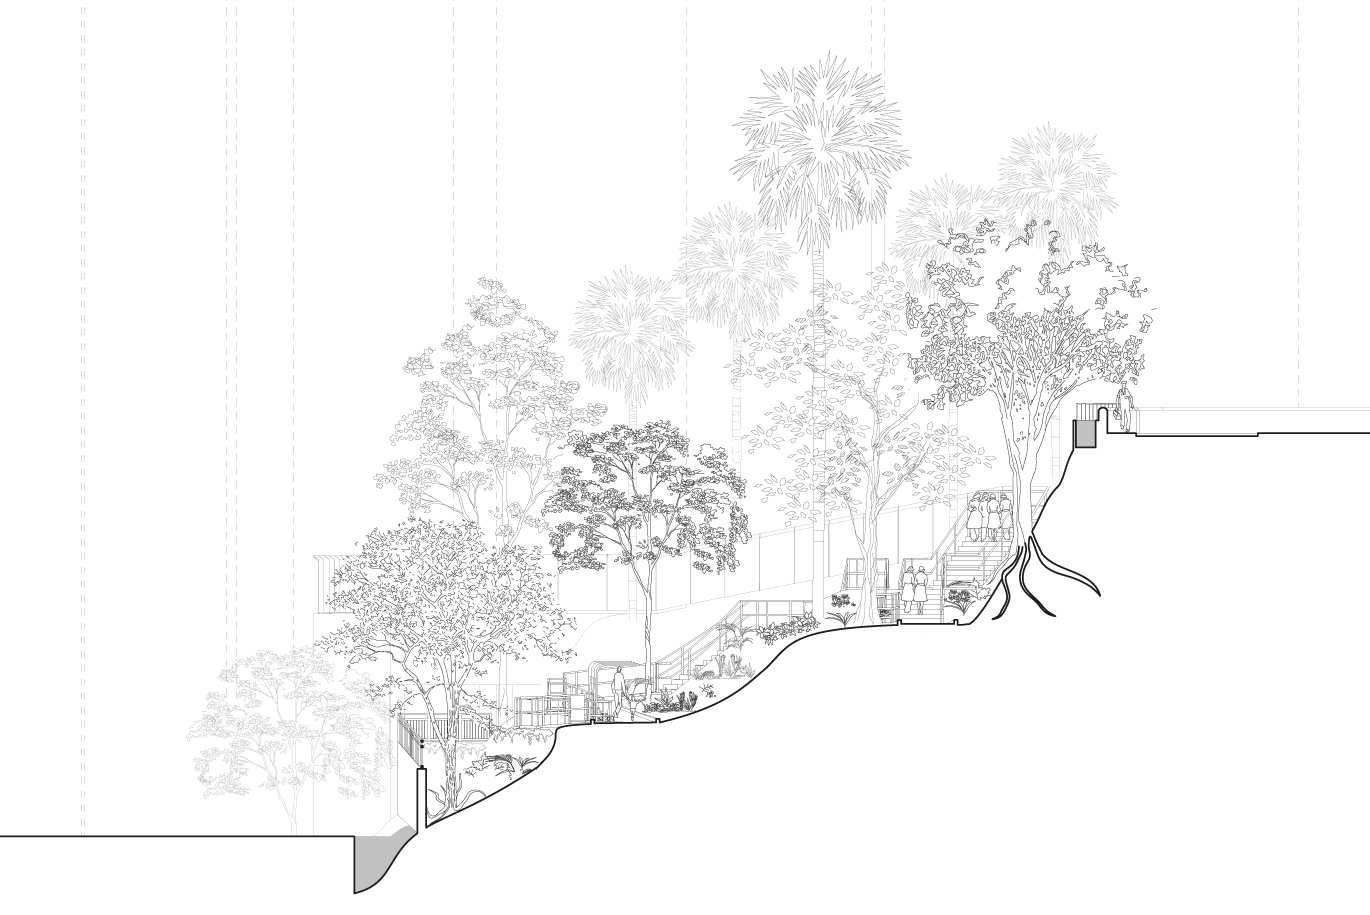 LANDSCAPE ARCHITECTURE FRONTIERS: Sharing Economy and City